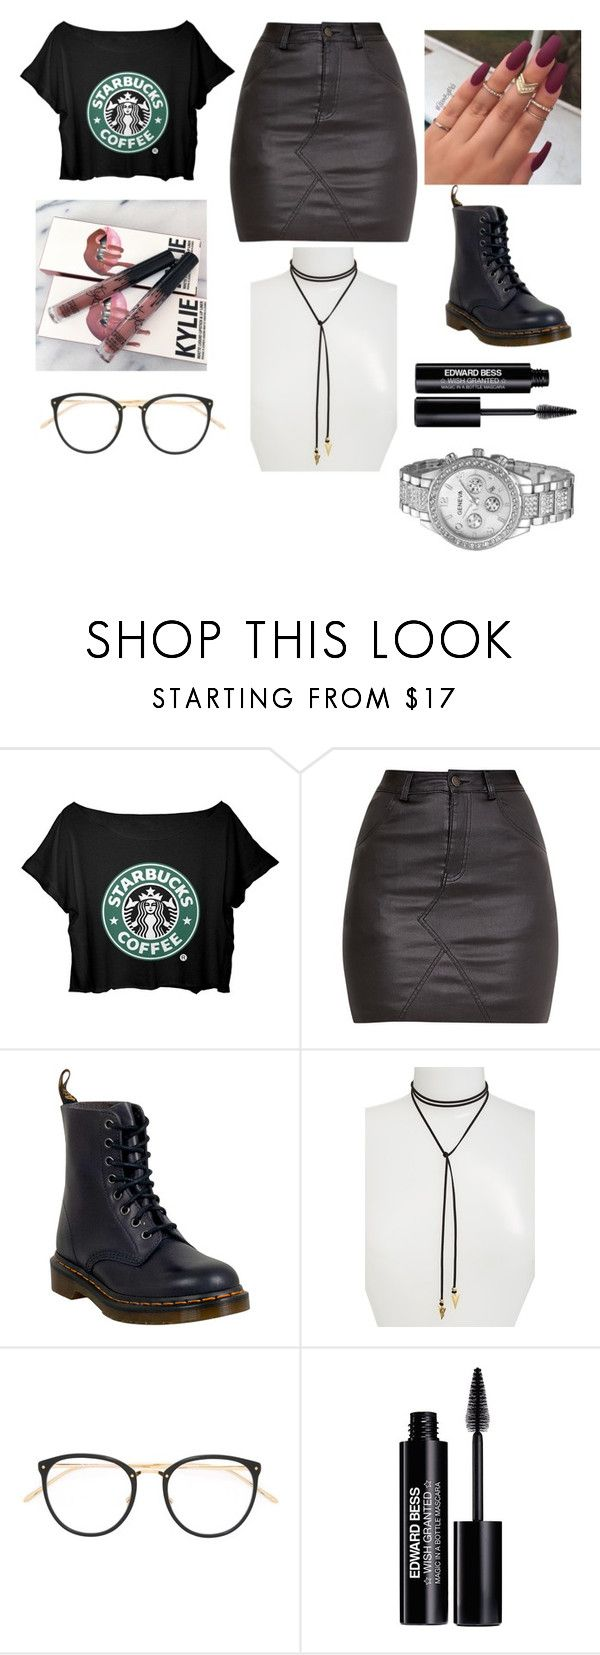 """Today I wanna look like this"" by kimk7 ❤ liked on Polyvore featuring Dr. Martens, Vanessa Mooney, Linda Farrow and Edward Bess"